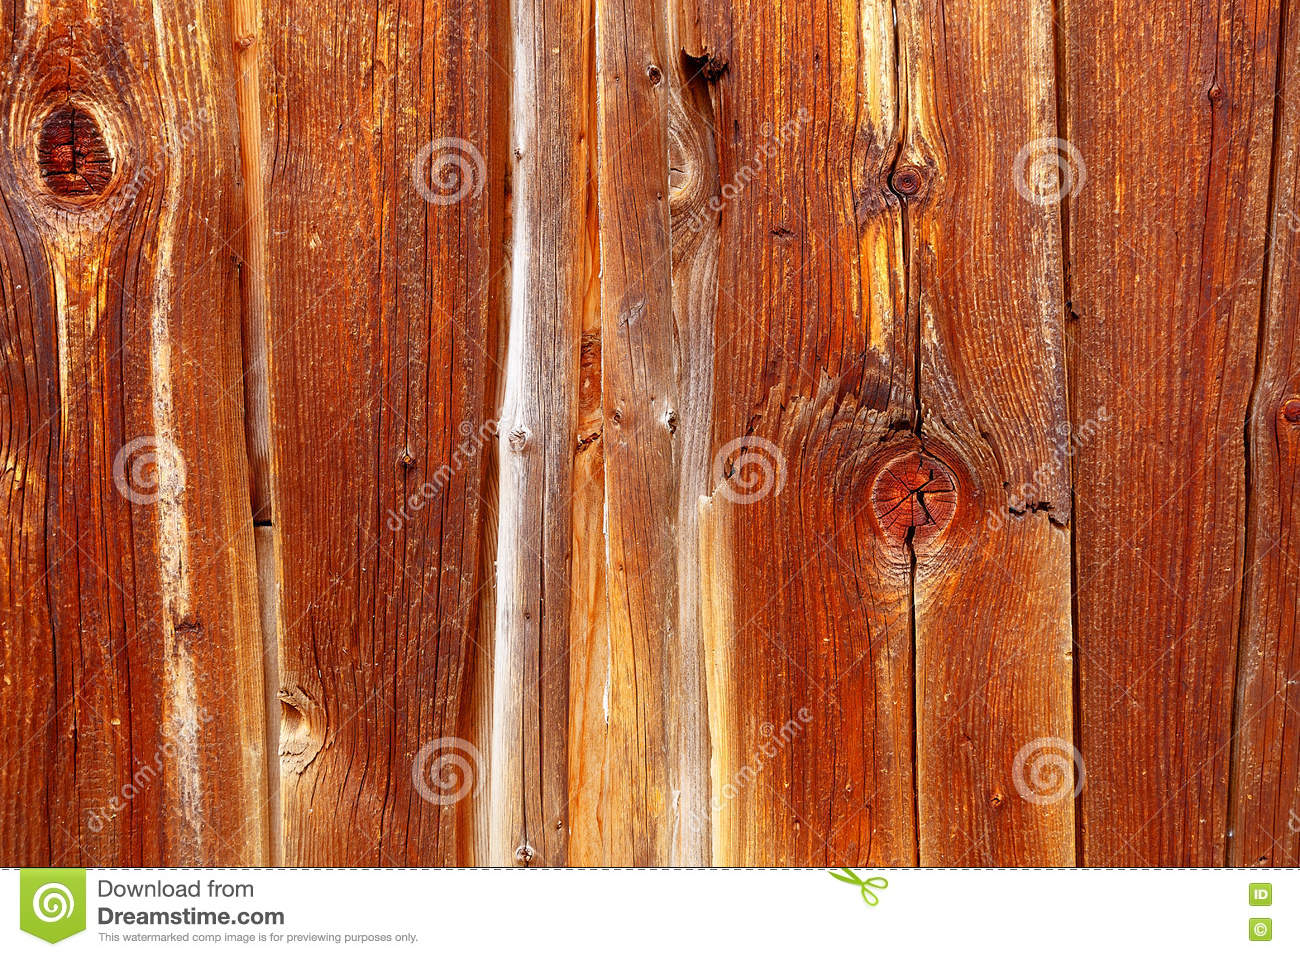 Wooden batten wall with detailed structural pattern.